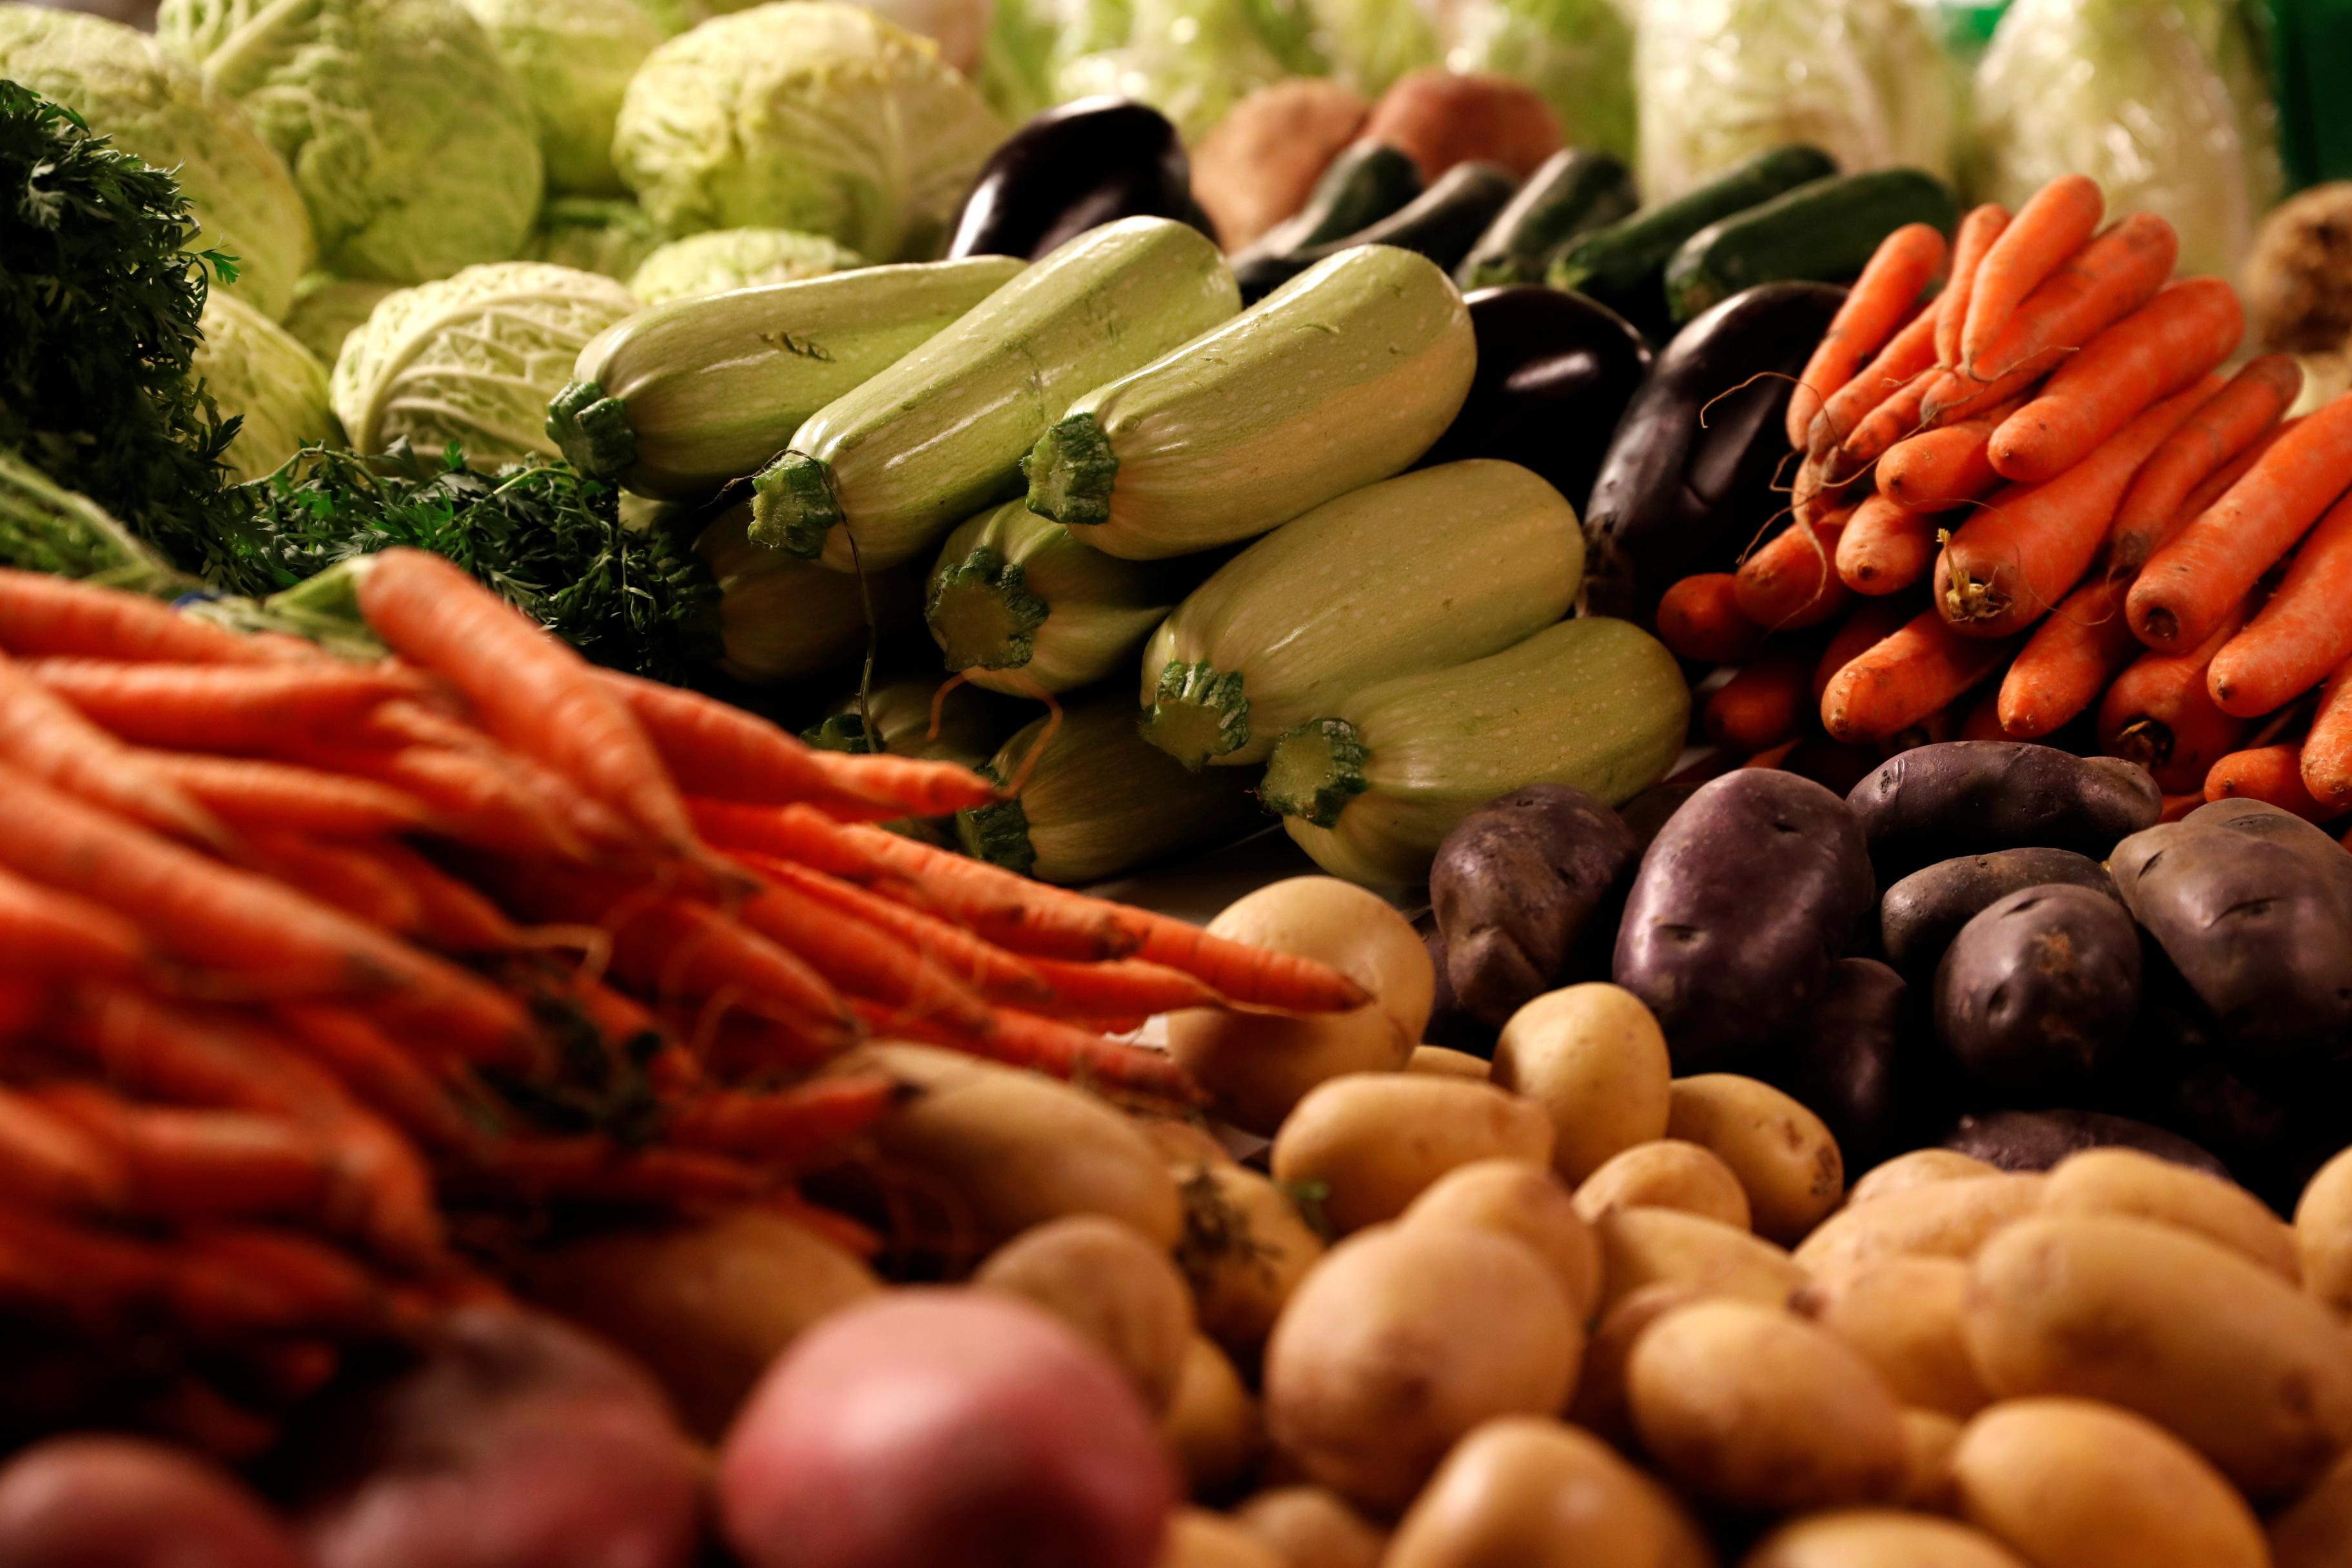 Professor warns climate change will make food less nutritious